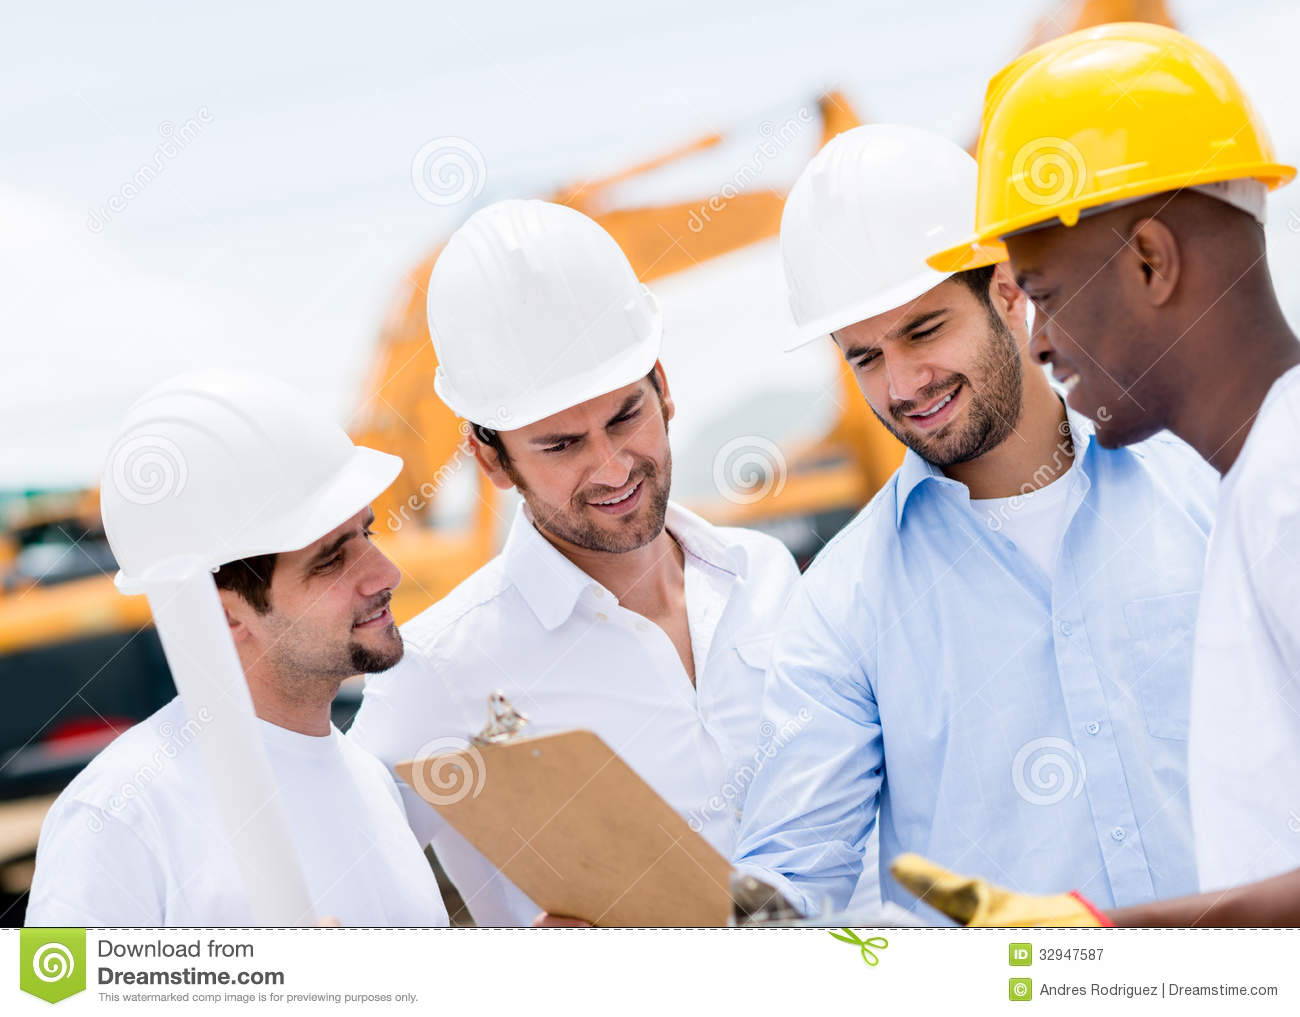 Architects Business Cards Engineers At A Construction Site Royalty Free Stock